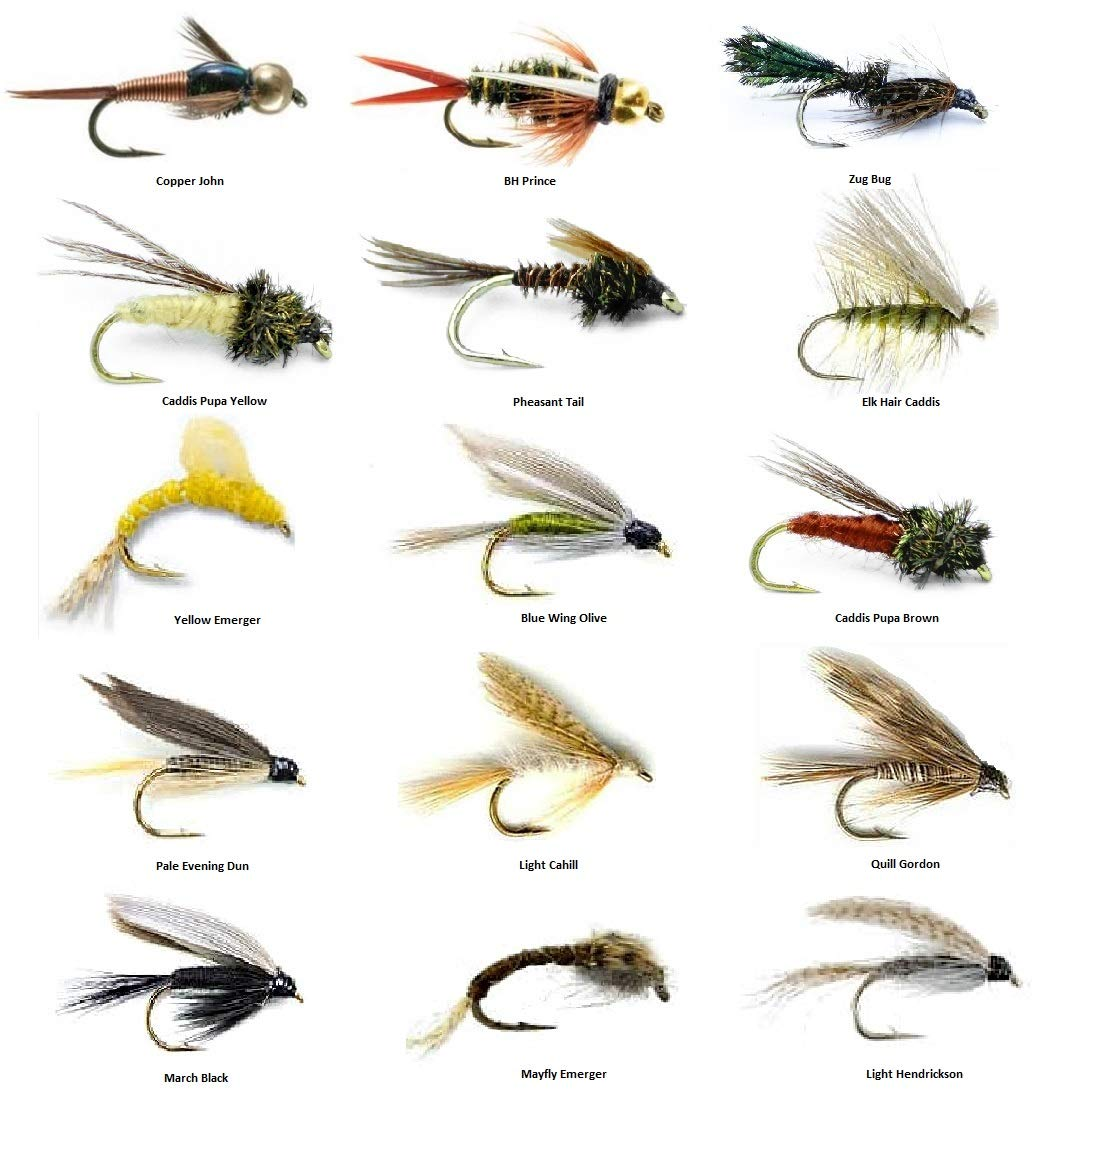 Fly Fishing Flies Assortment - Popular for Trout Fishing and Other Freshwater Fish - 30 Wet Flies - 15 Patterns Nymphs, Emergers, Bead Head Prince, Copper John, Mayflies, Caddis, and More (15)